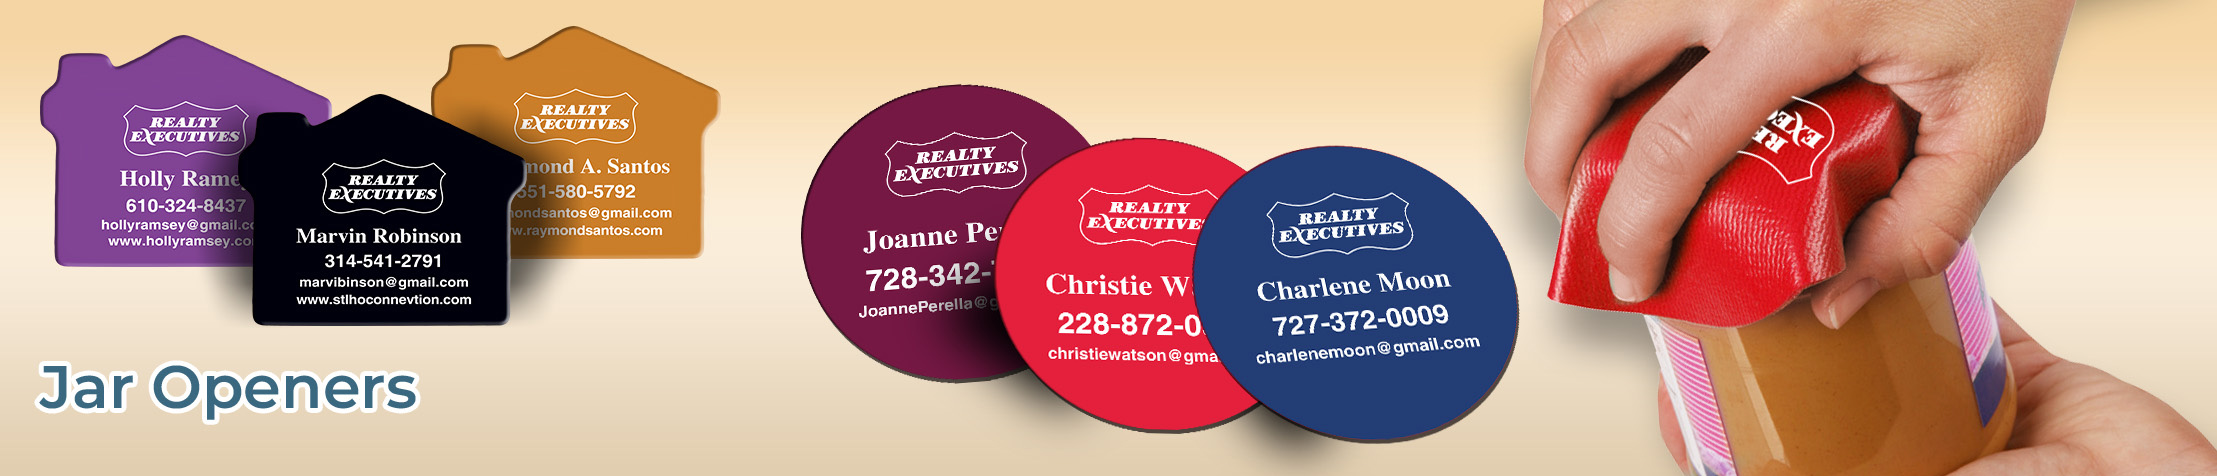 Realty Executives Real Estate Jar Openers - Realty Executives personalized realtor promotional products | BestPrintBuy.com